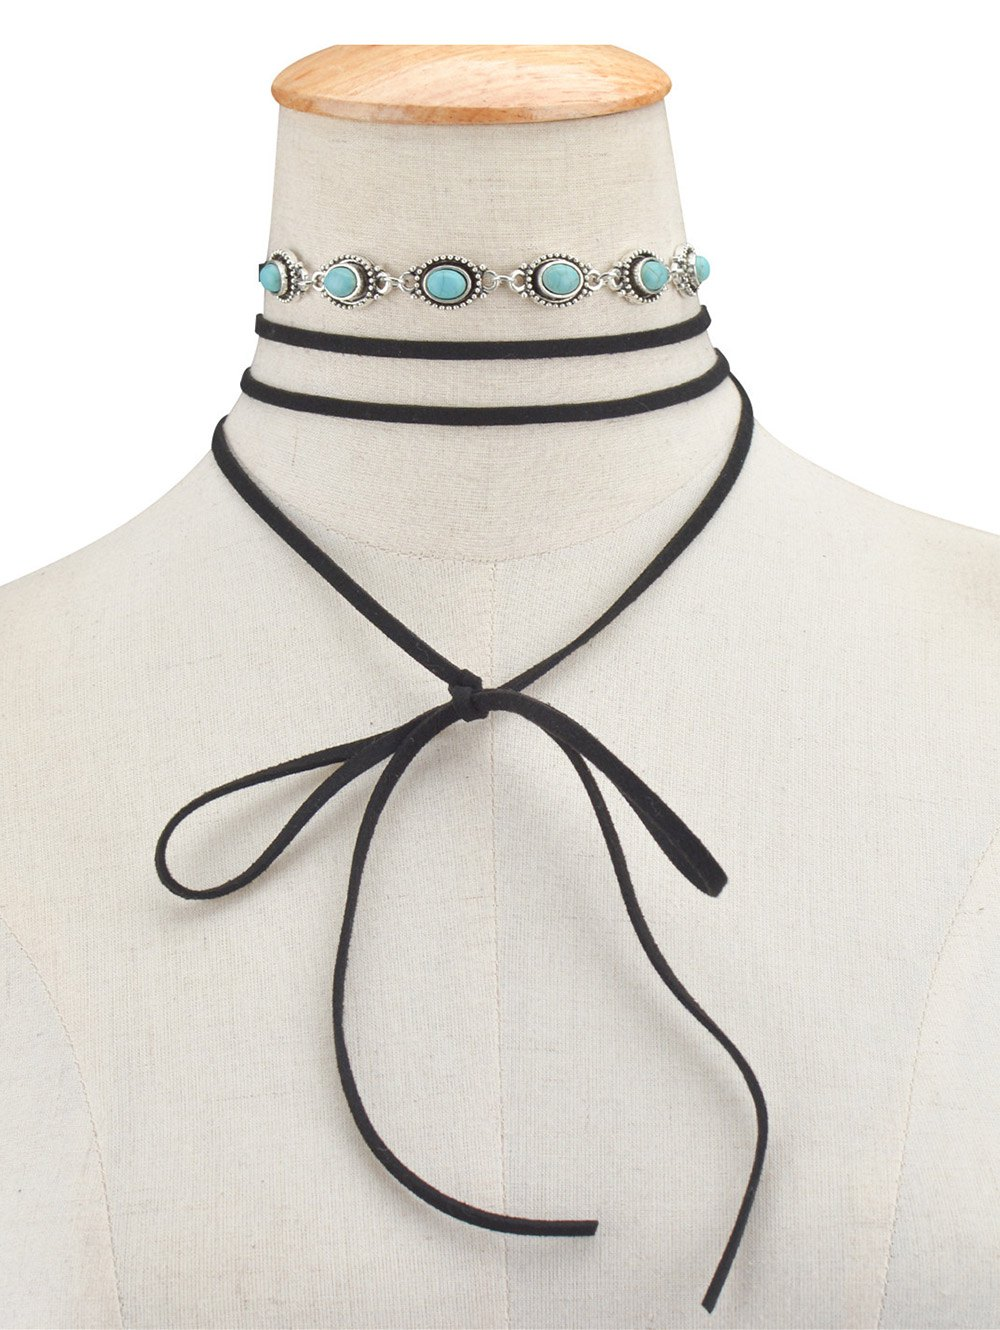 Artificial Turquoise Bows Choker Necklace